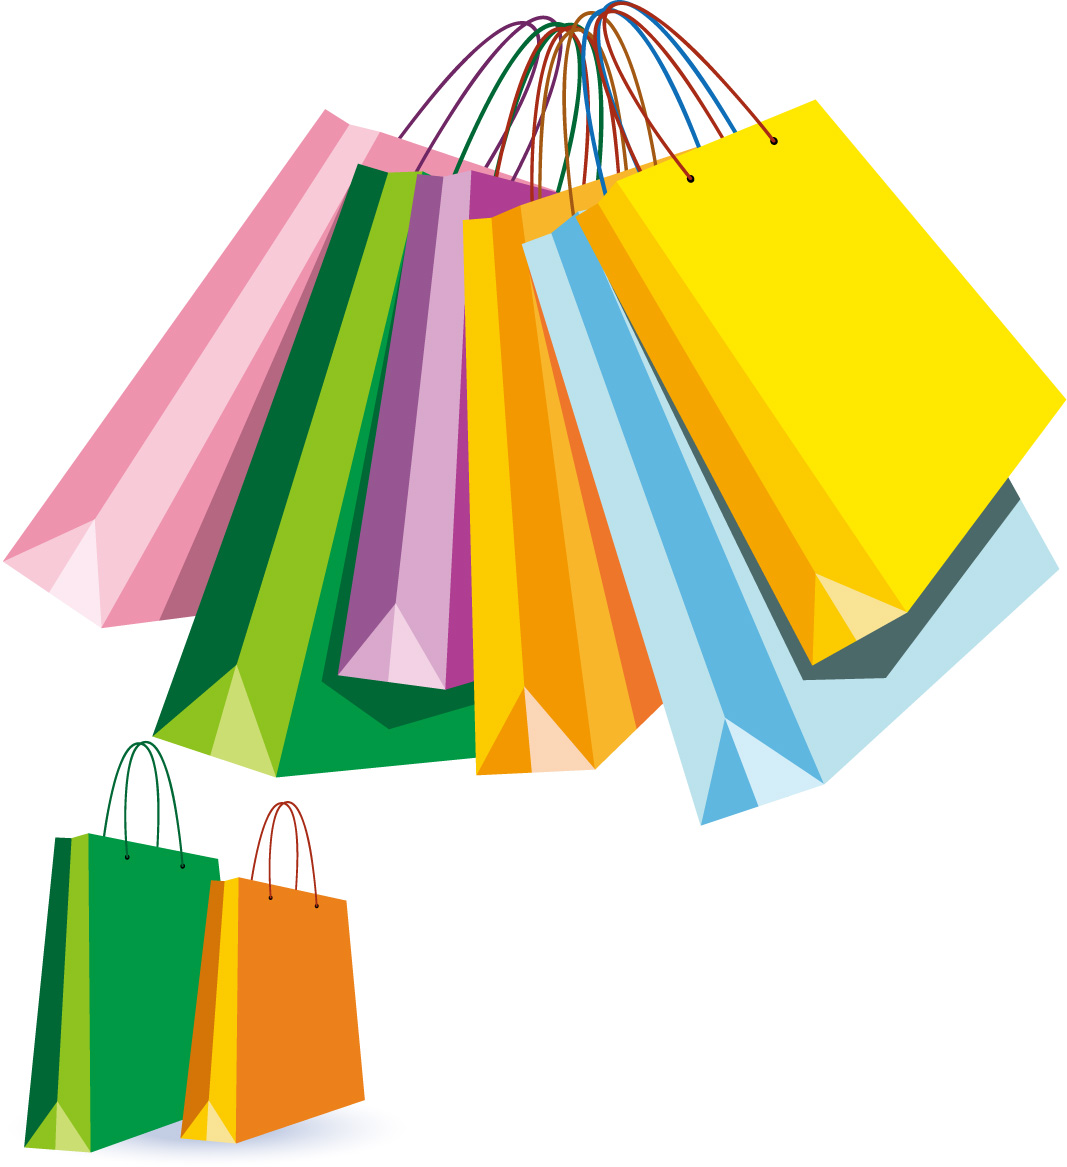 Shopping bag pictures clipart download Free Pictures Of Shopping Bags, Download Free Clip Art, Free ... download